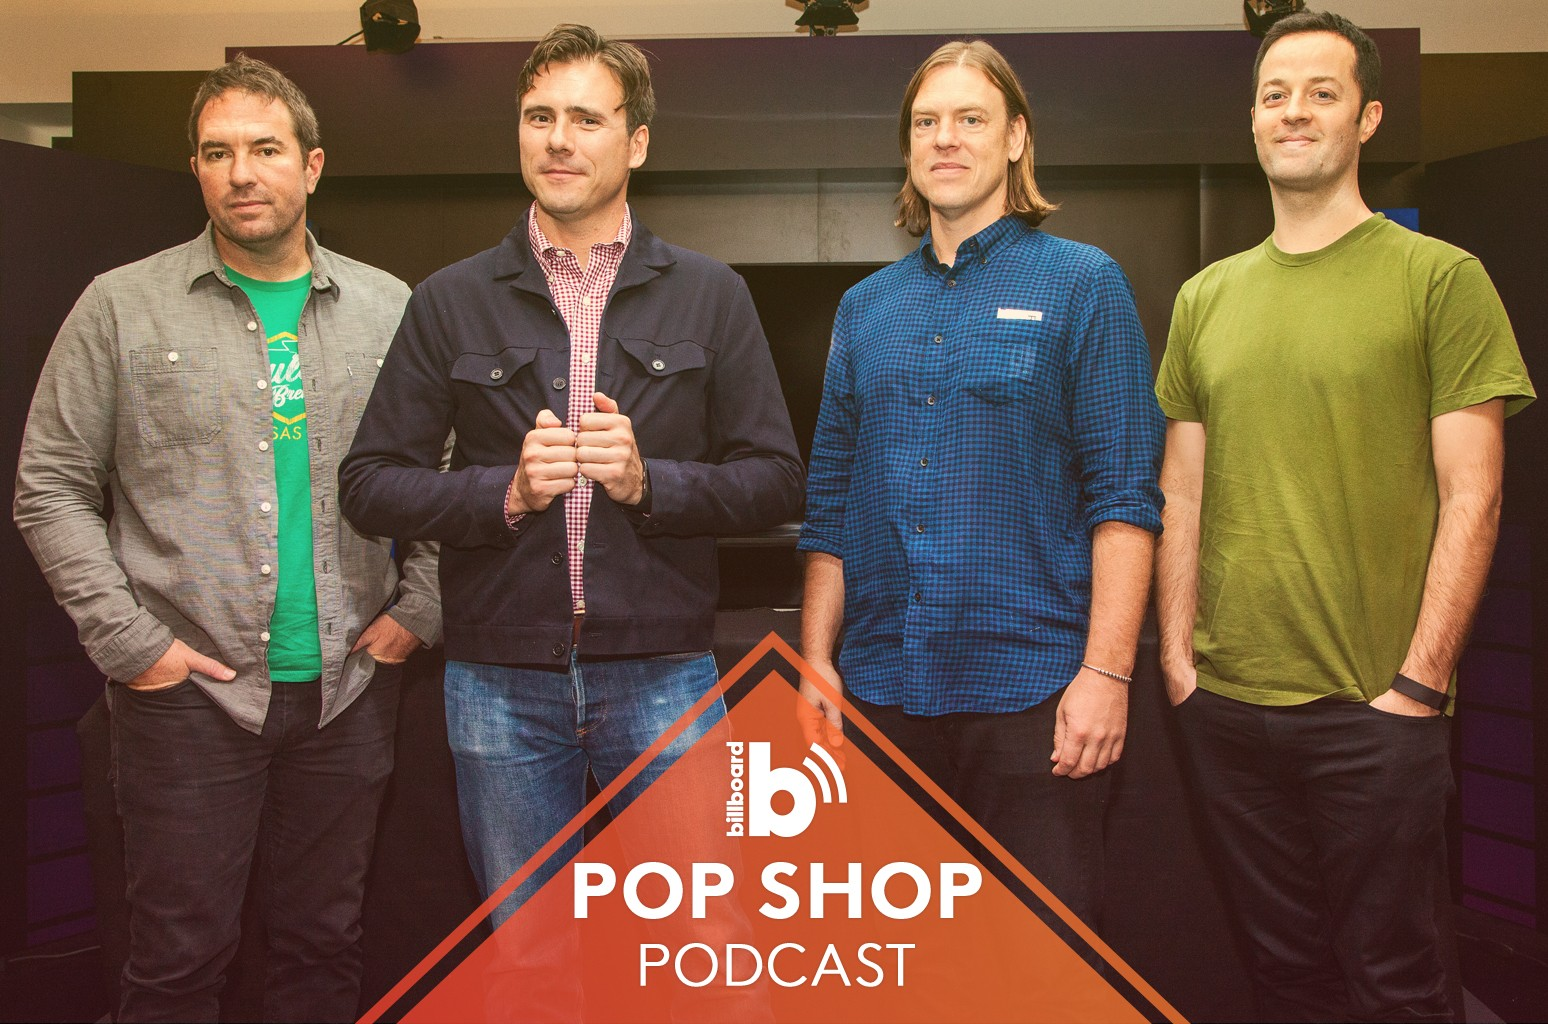 Pop Shop Podcast featuring: Jimmy Eat World